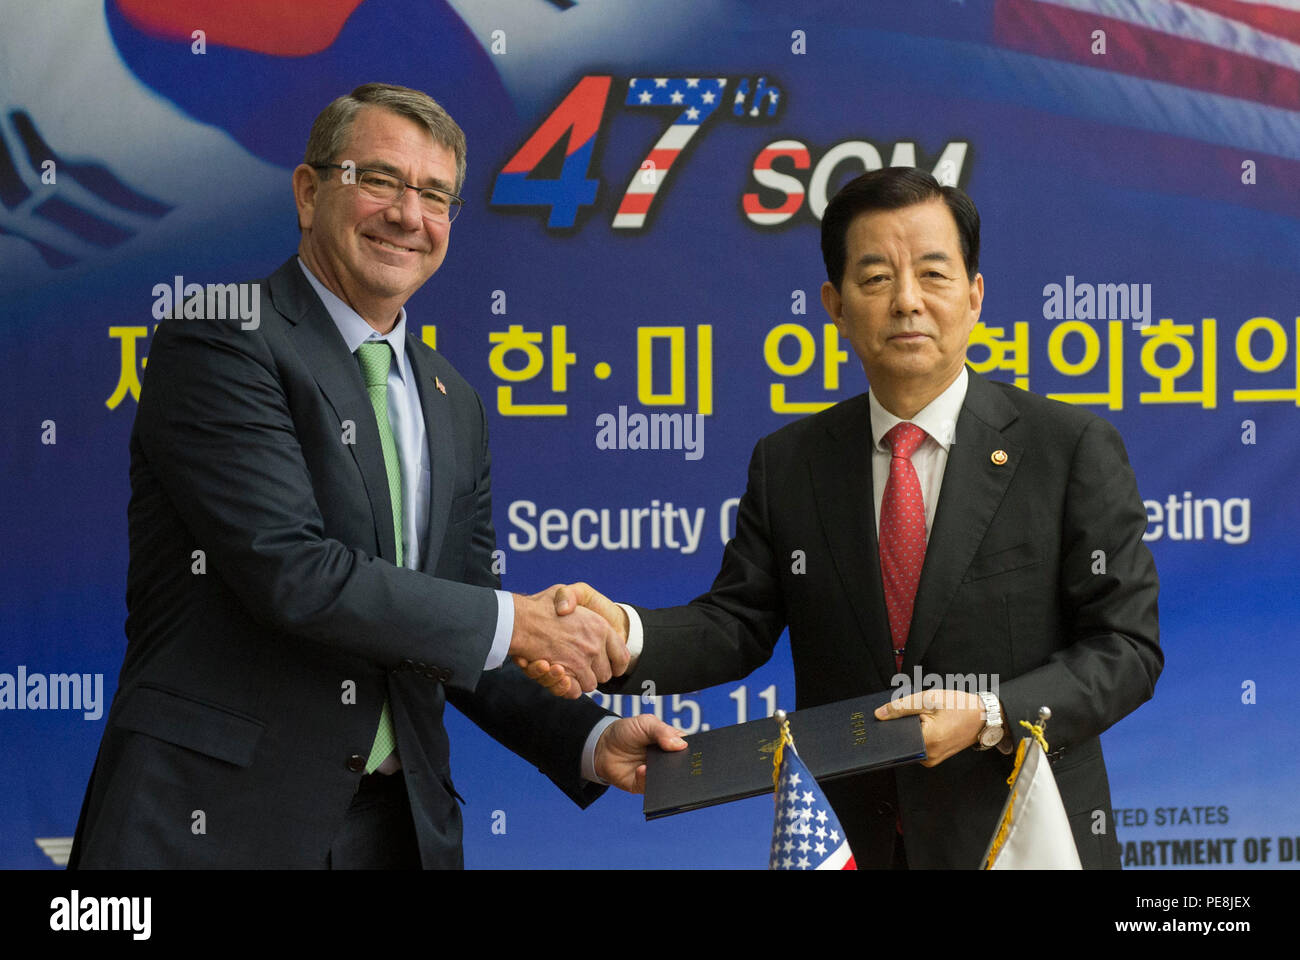 Secretary of Defense Ash Carter shakes hands with Republic of Korea Minister of Defense Minkoo Han at the conclusion of the 47th annual  U.S. - Korea Security Consultative Meeting Plenary Session in Seoul, Republic of Korea Nov. 2, 2015. The two leaders met to discuss matters of mutual importance. (Photo by Senior Master Sgt. Adrian Cadiz)(Released) Stock Photo